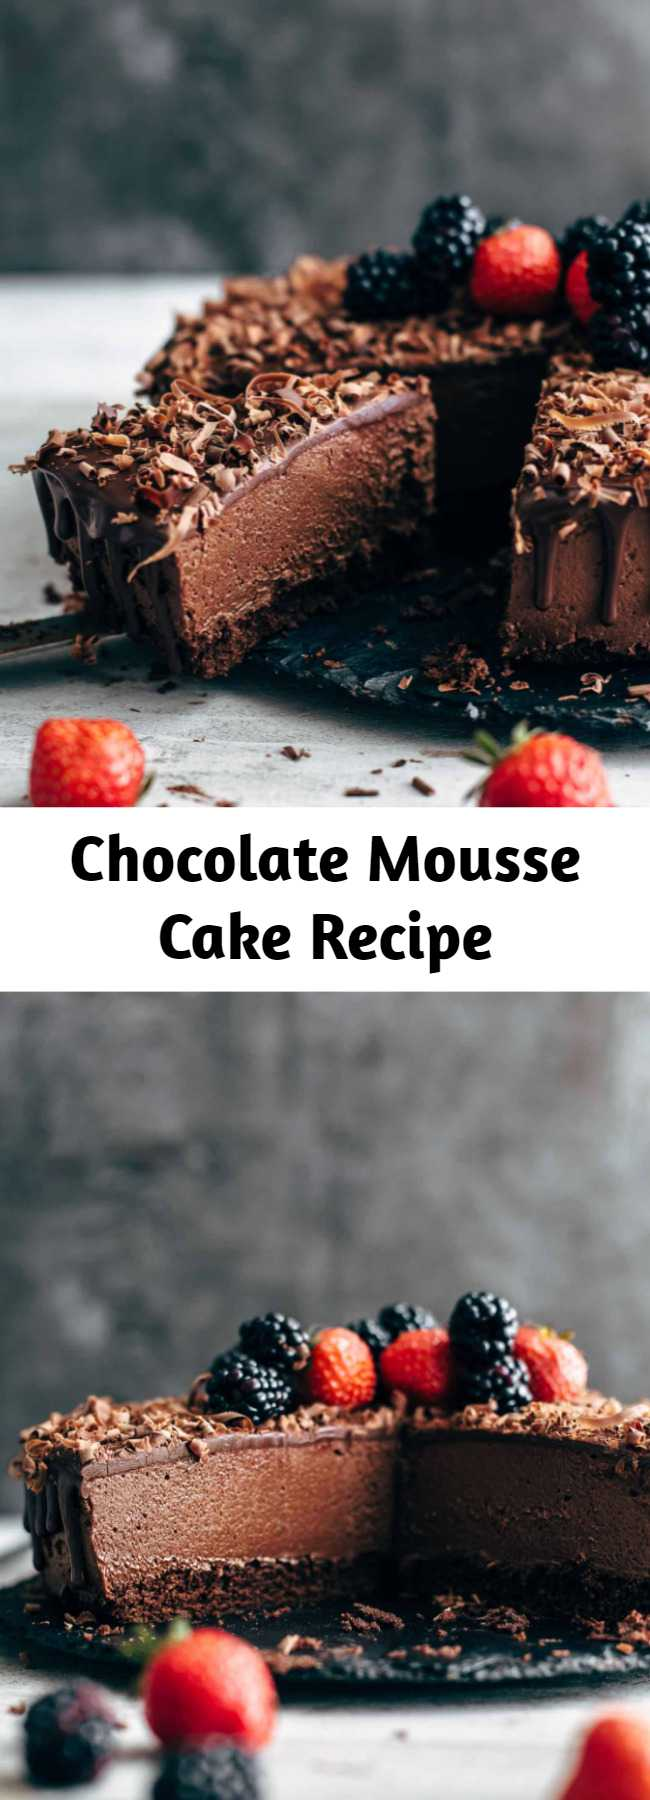 Chocolate Mousse Cake Recipe - This is THE Chocolate Mousse Cake recipe. Soft and moist chocolate cake layer topped with super creamy chocolate mousse and soft chocolate ganache.